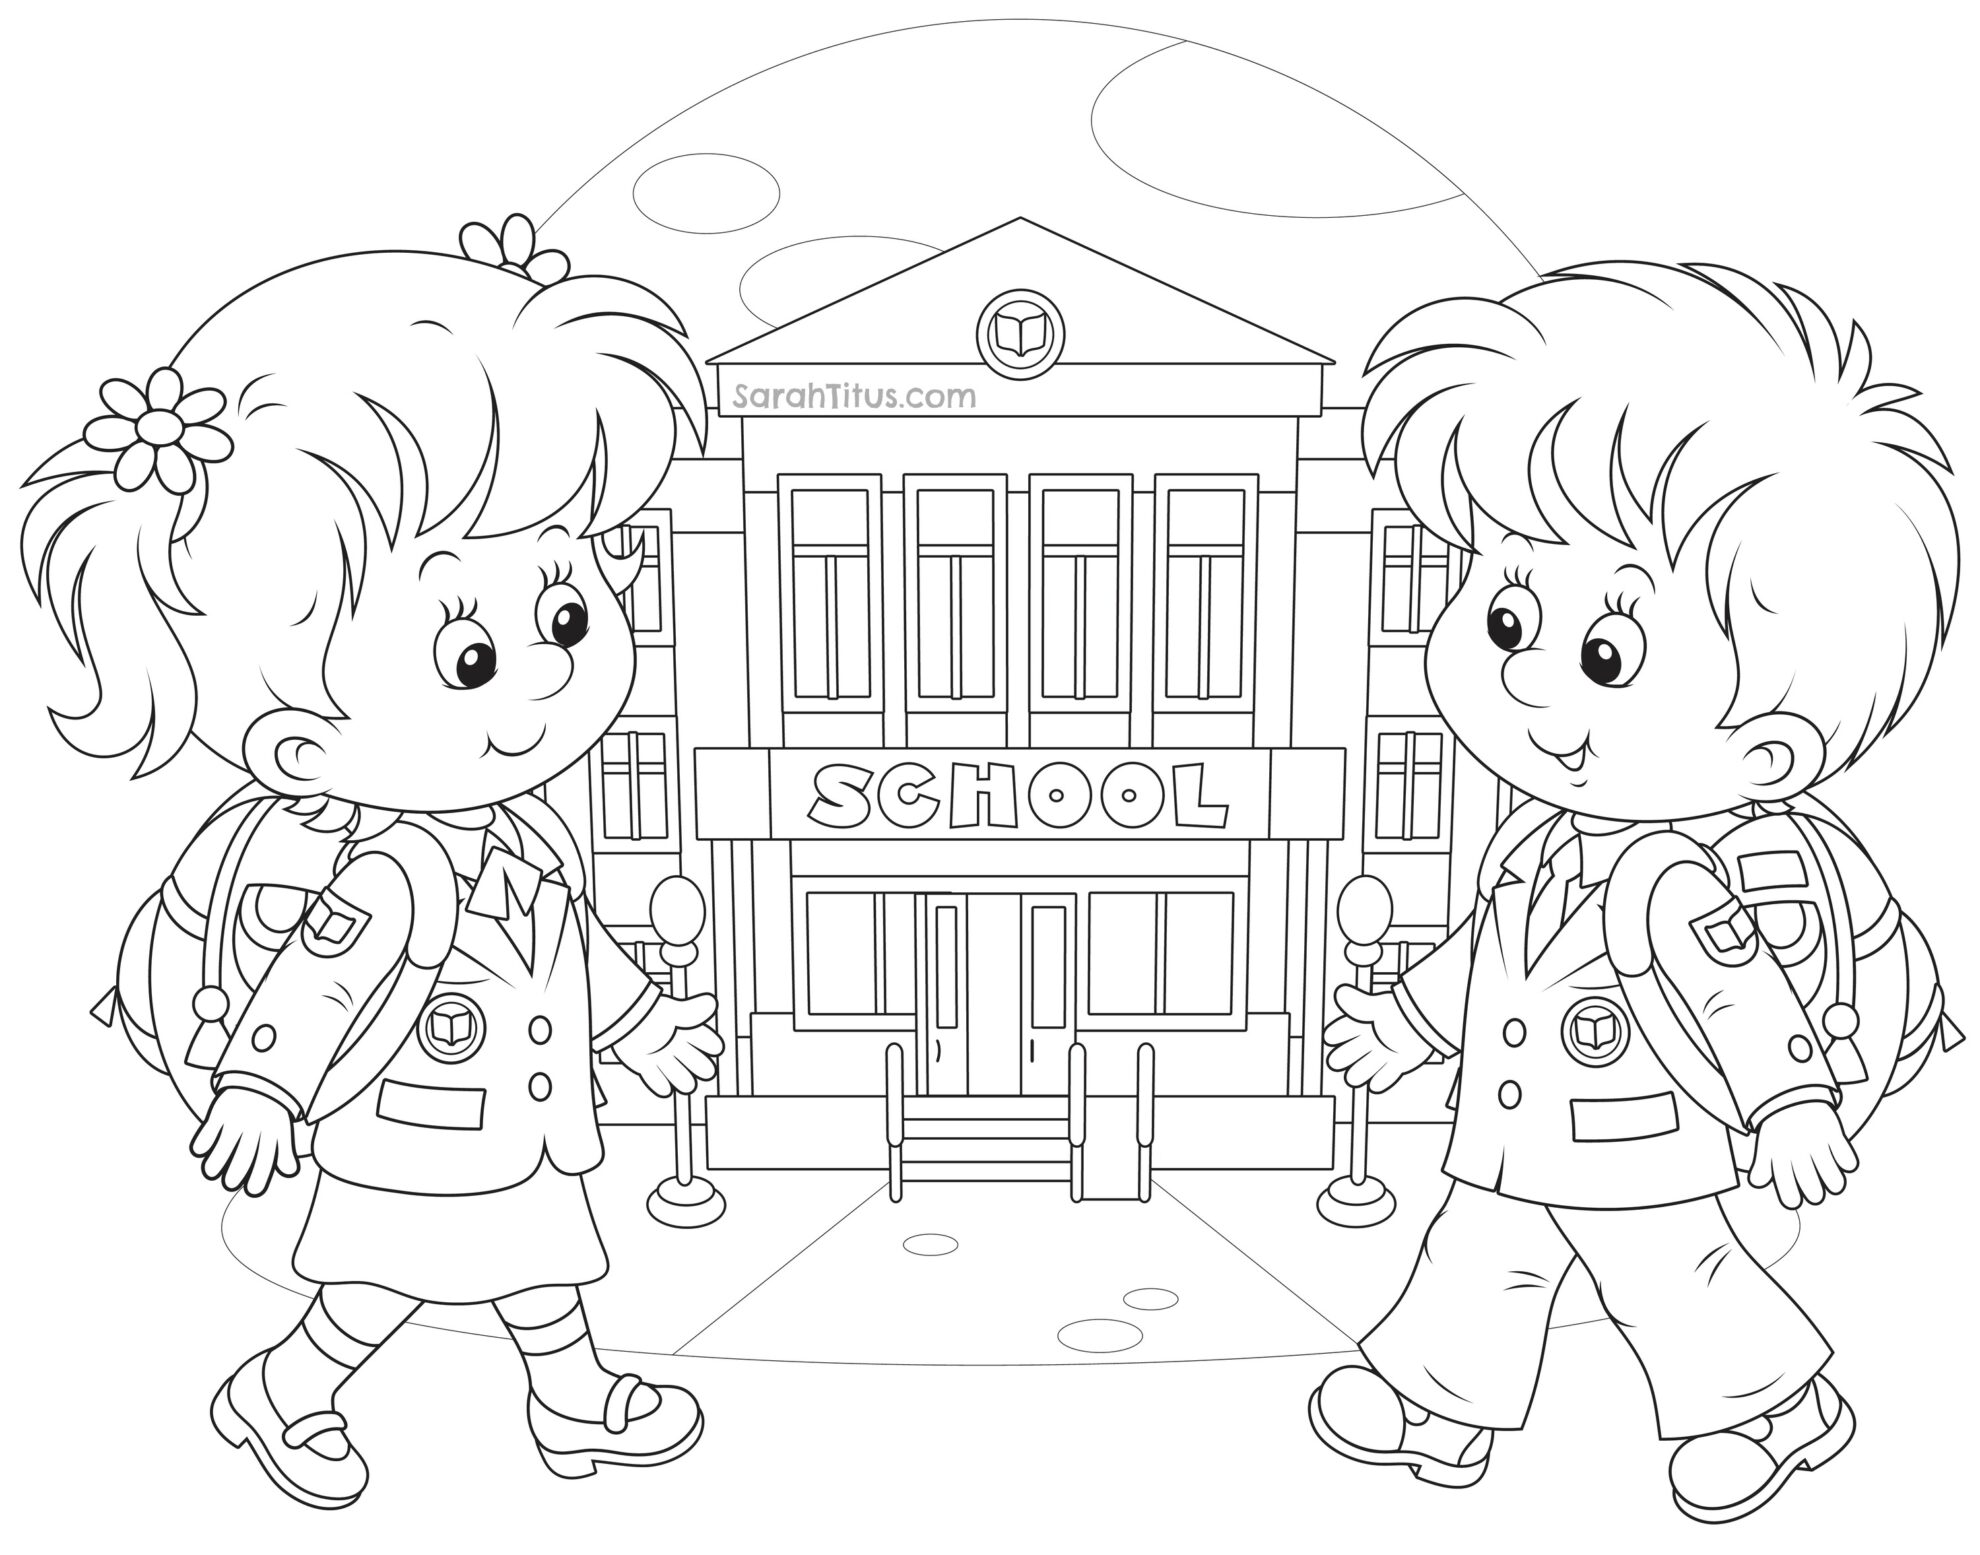 coloring picture school cute schoolhouse coloring page free clip art picture coloring school